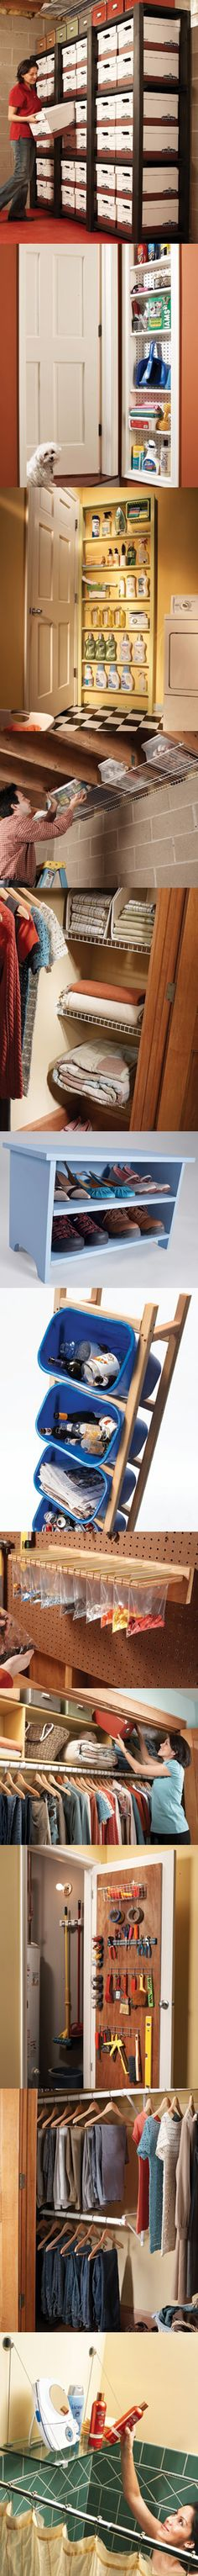 Awesome and useful storage ideas!